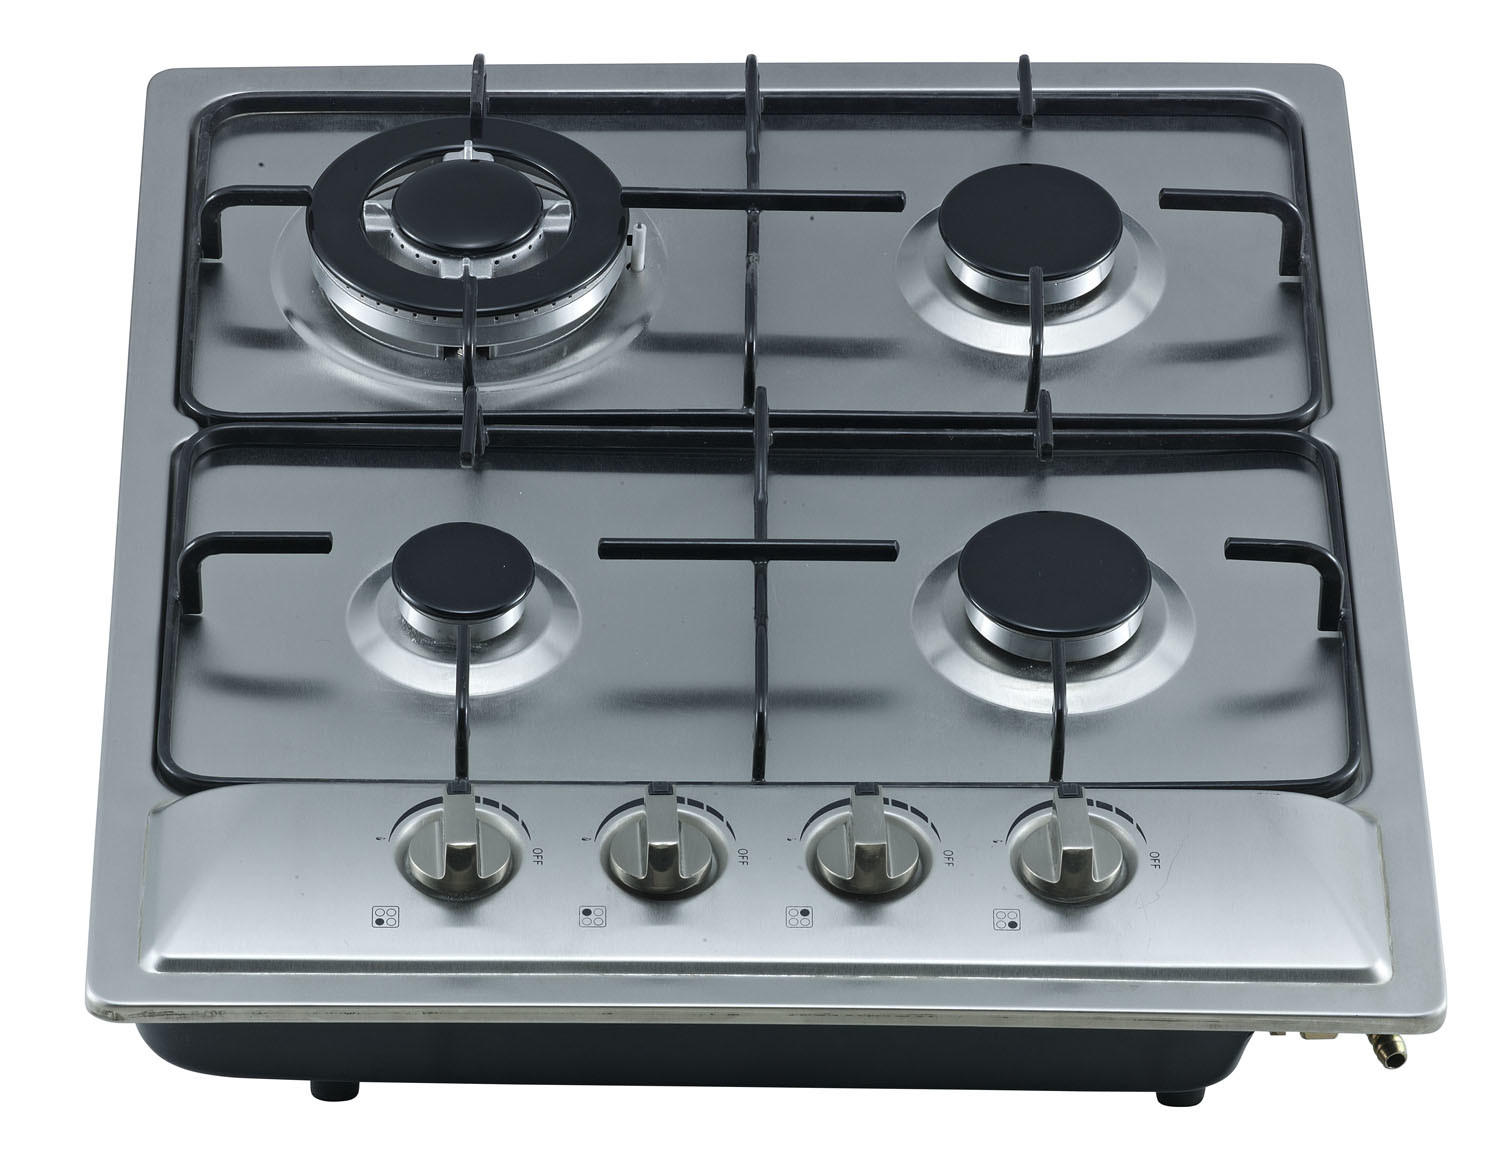 Build-in Gas Cooker Hob with Stainless Steel Top and Four Buners Sn-614